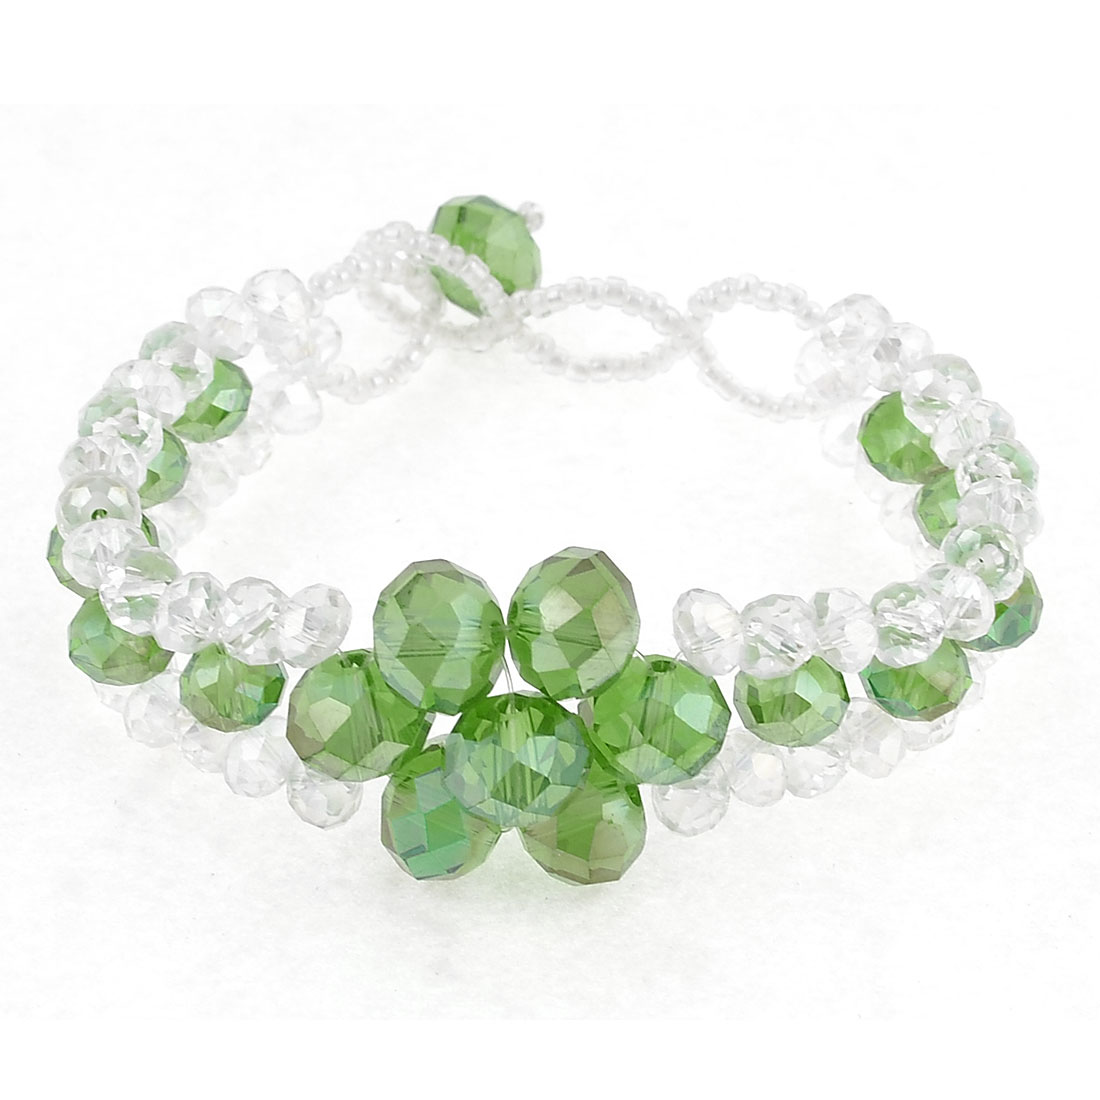 Women Faux Faceted Crystal 3 Rows Bracelet Decor Green Clear